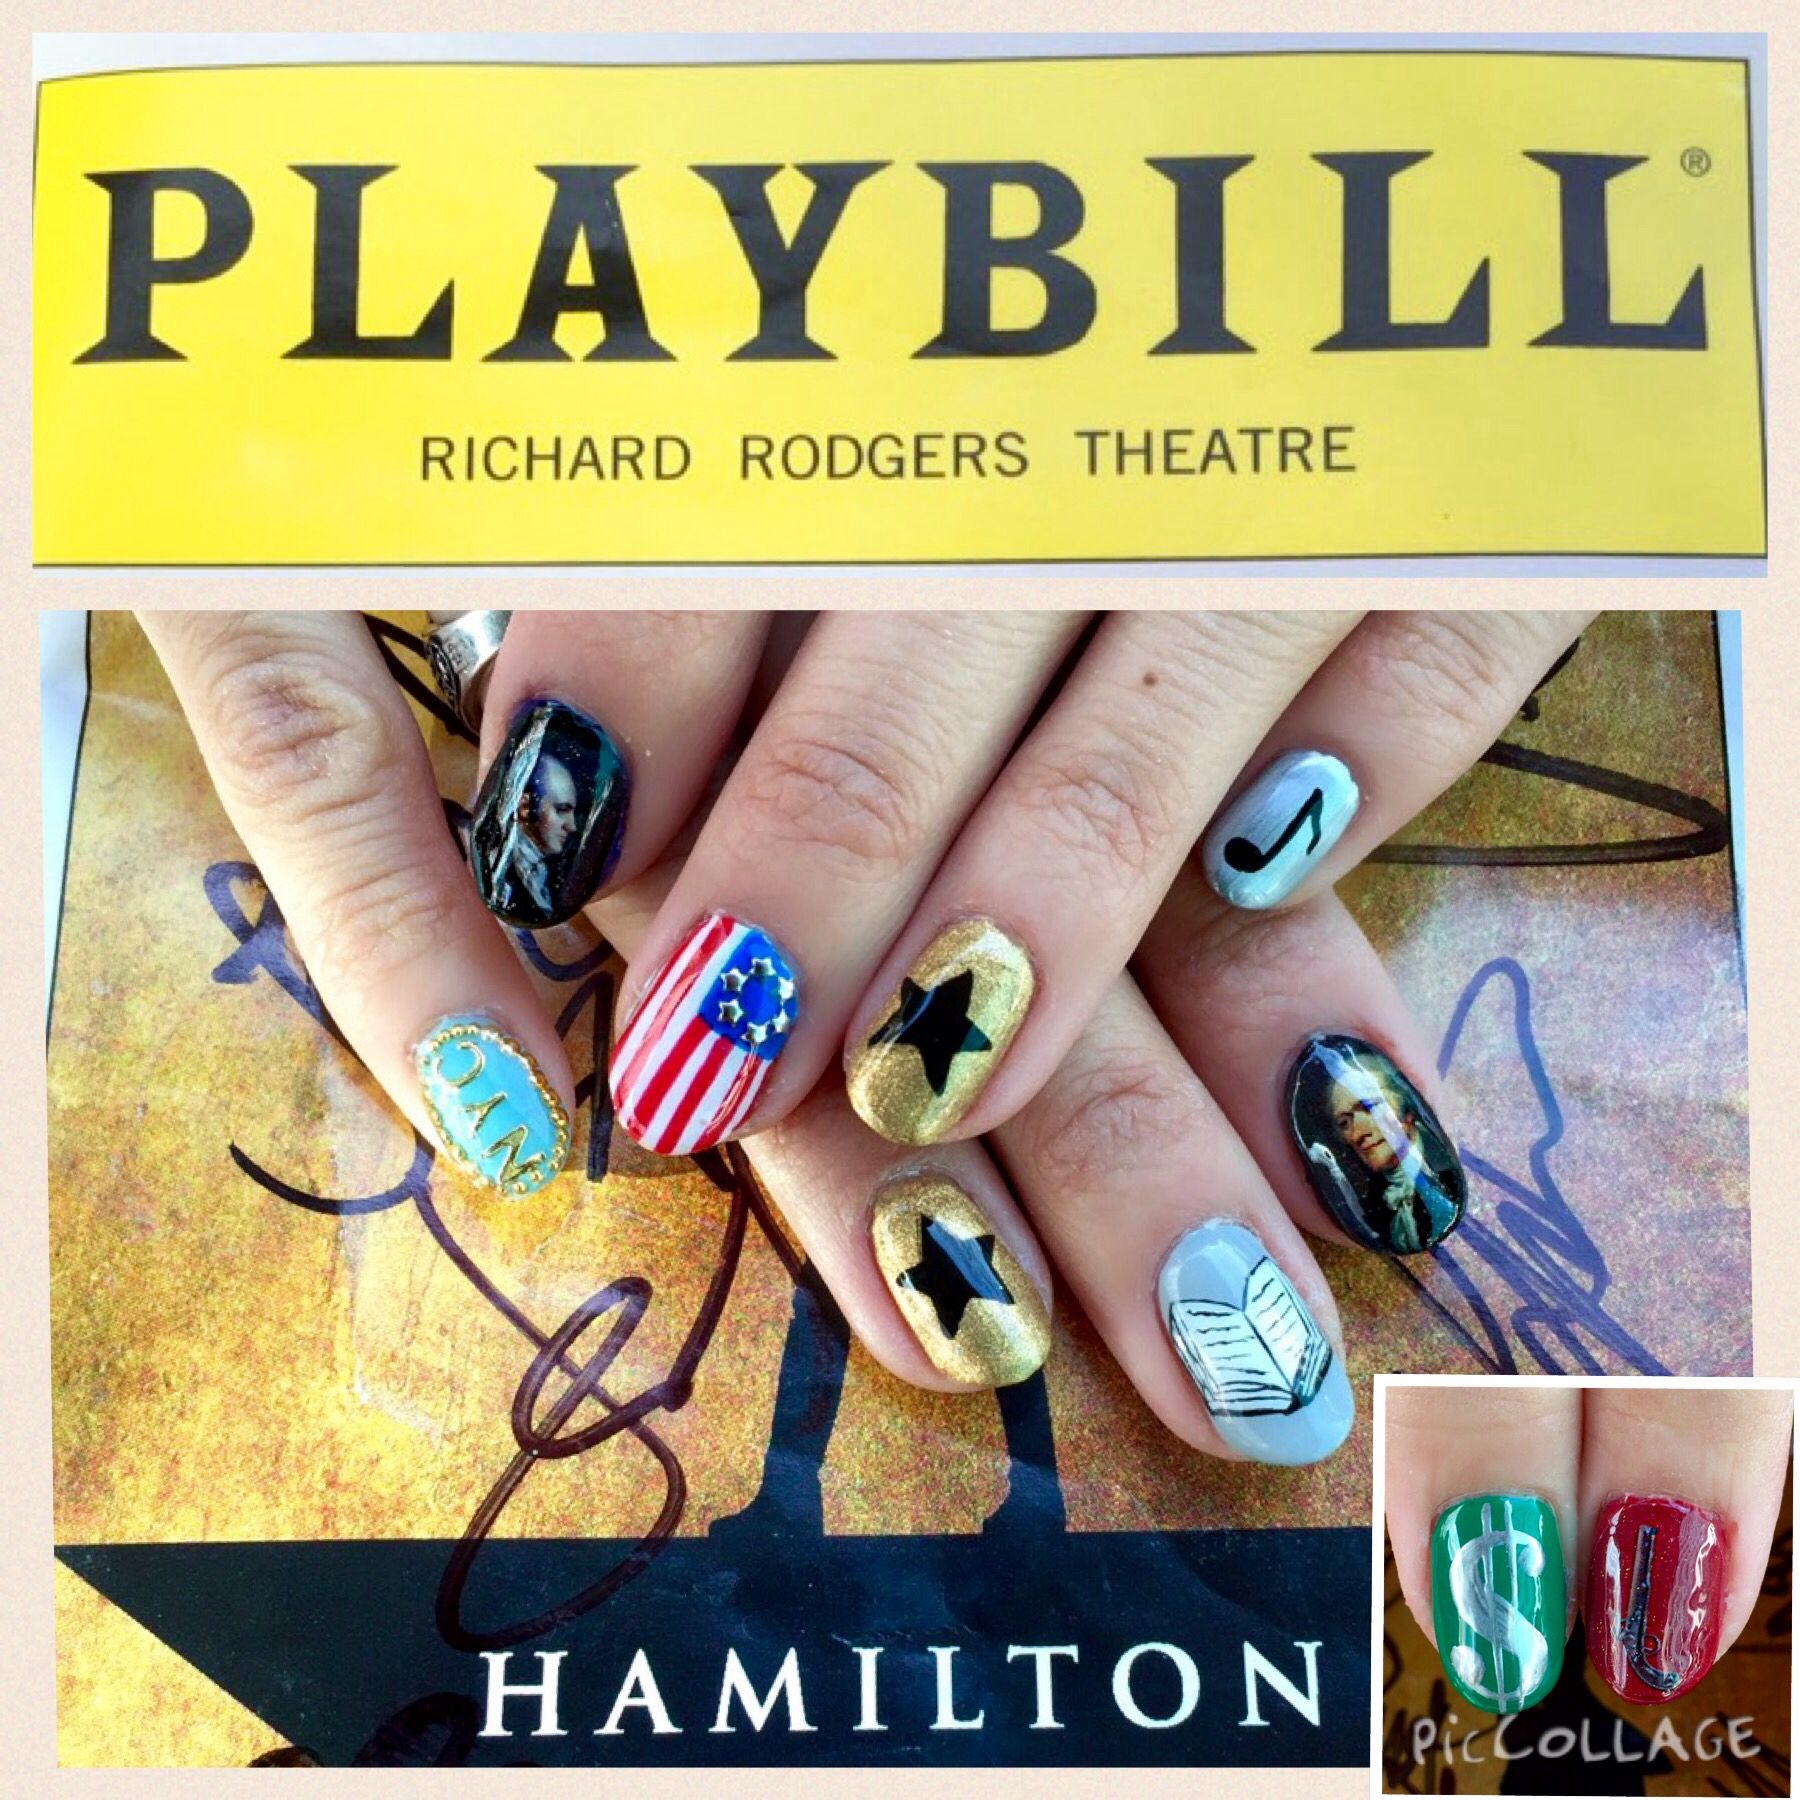 When anyone asks about my nails, I get to talk about Hamilton the ...